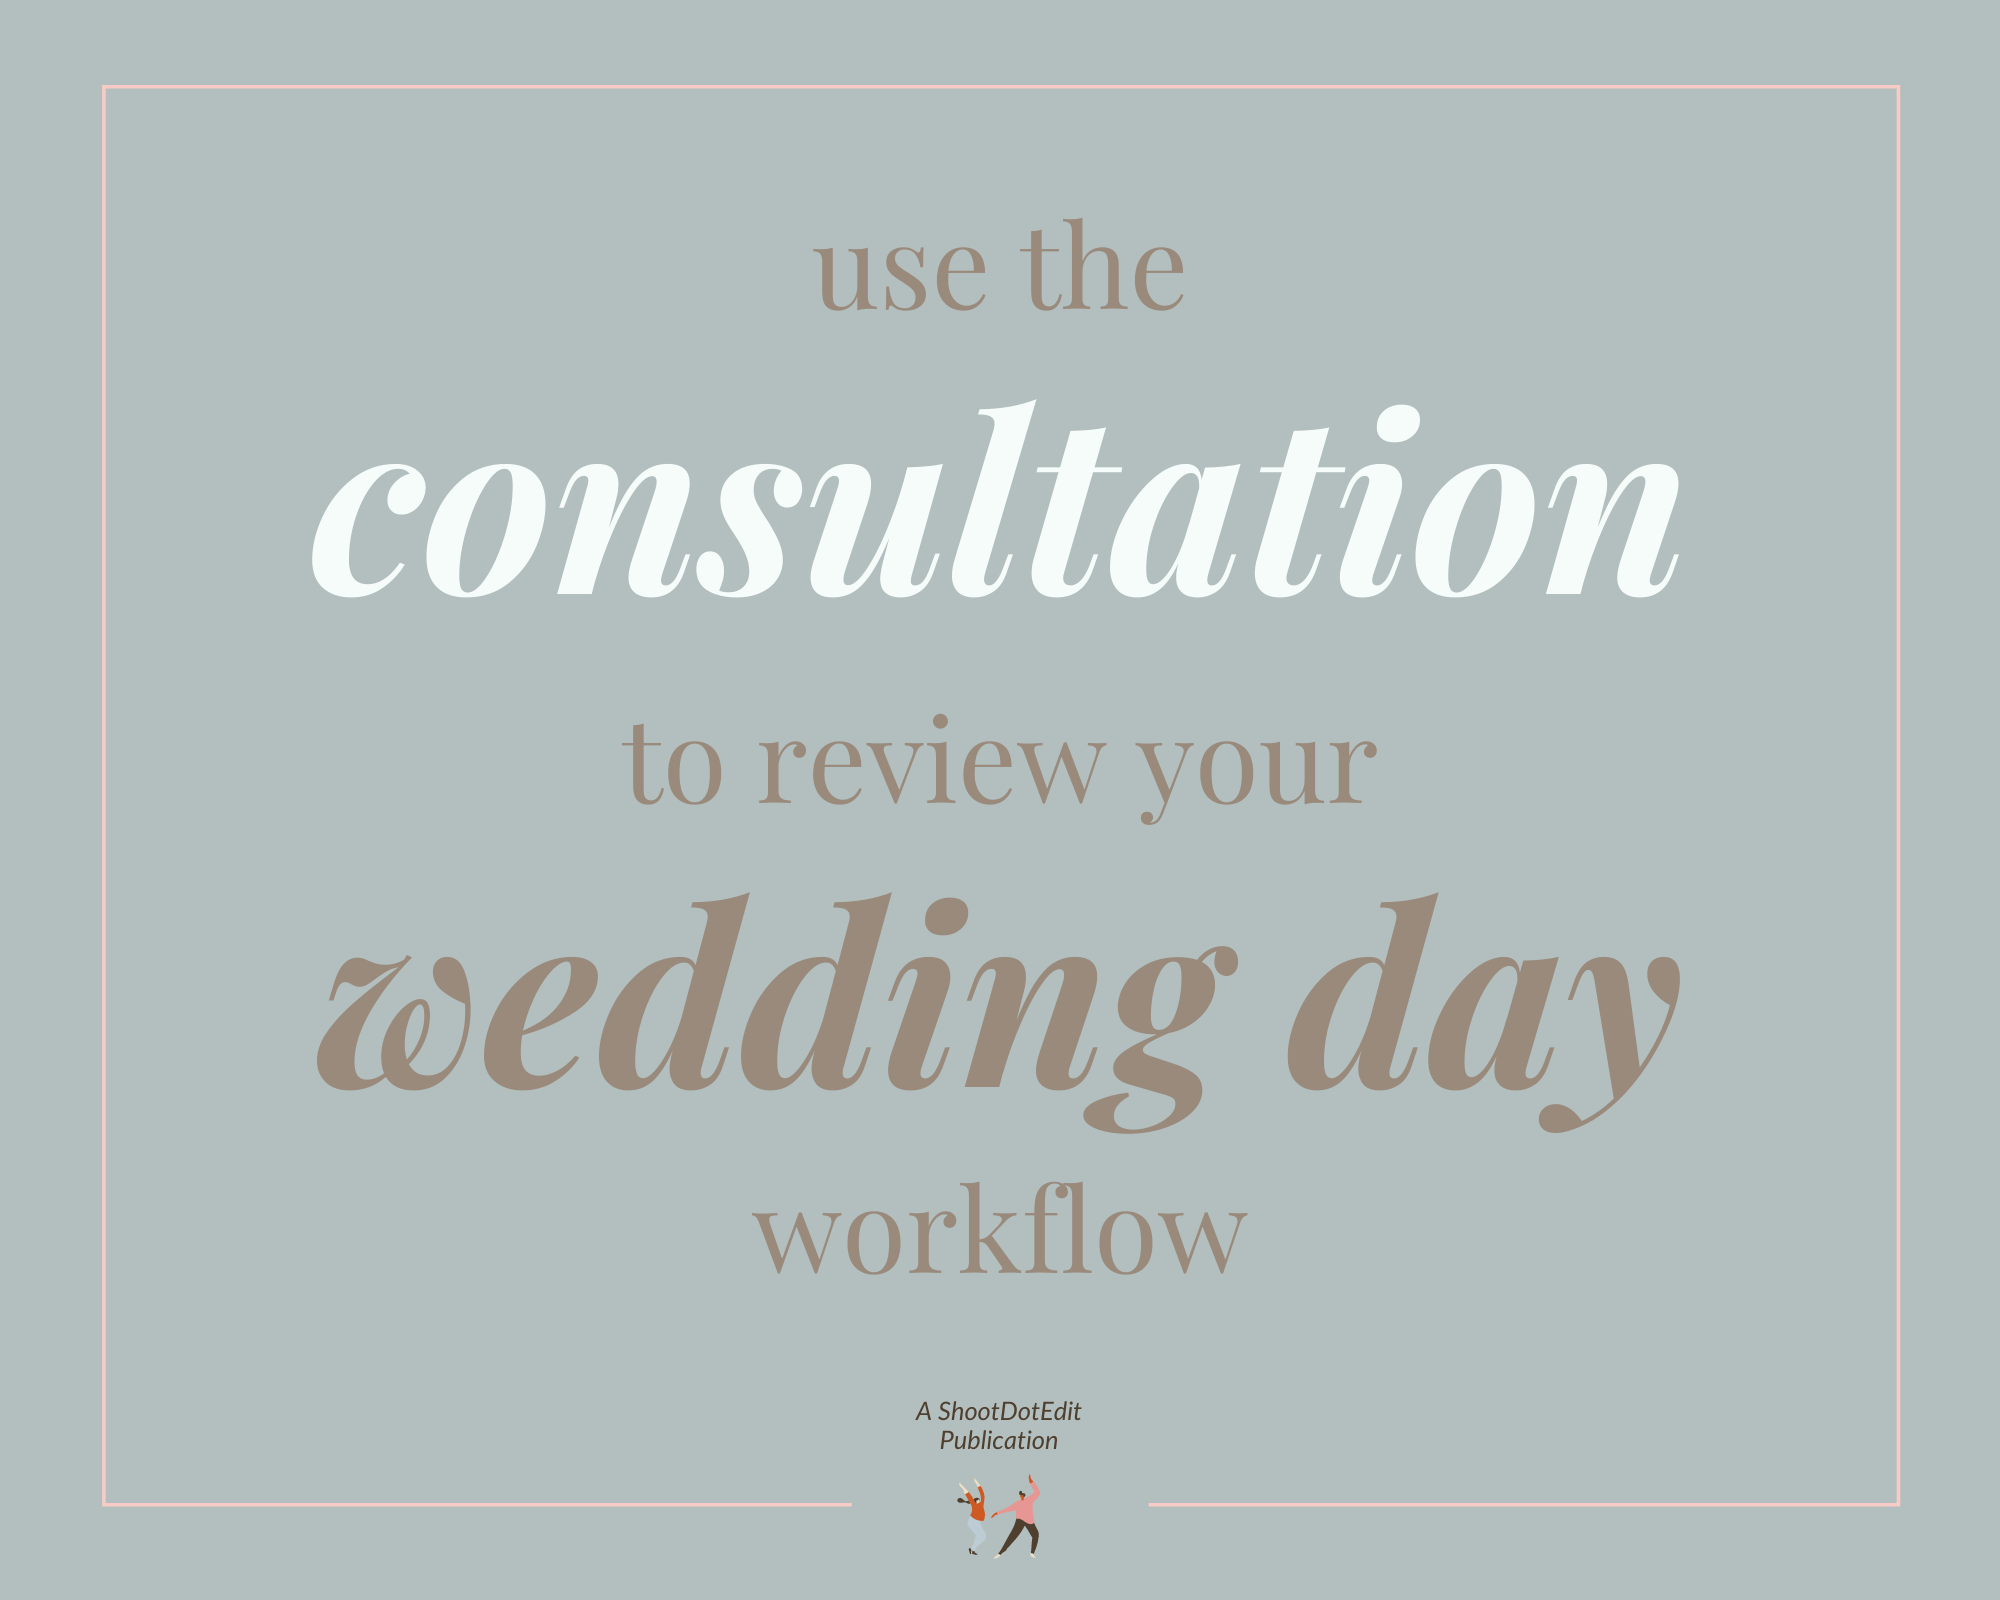 Infographic - use the consultation to review your wedding day workflow